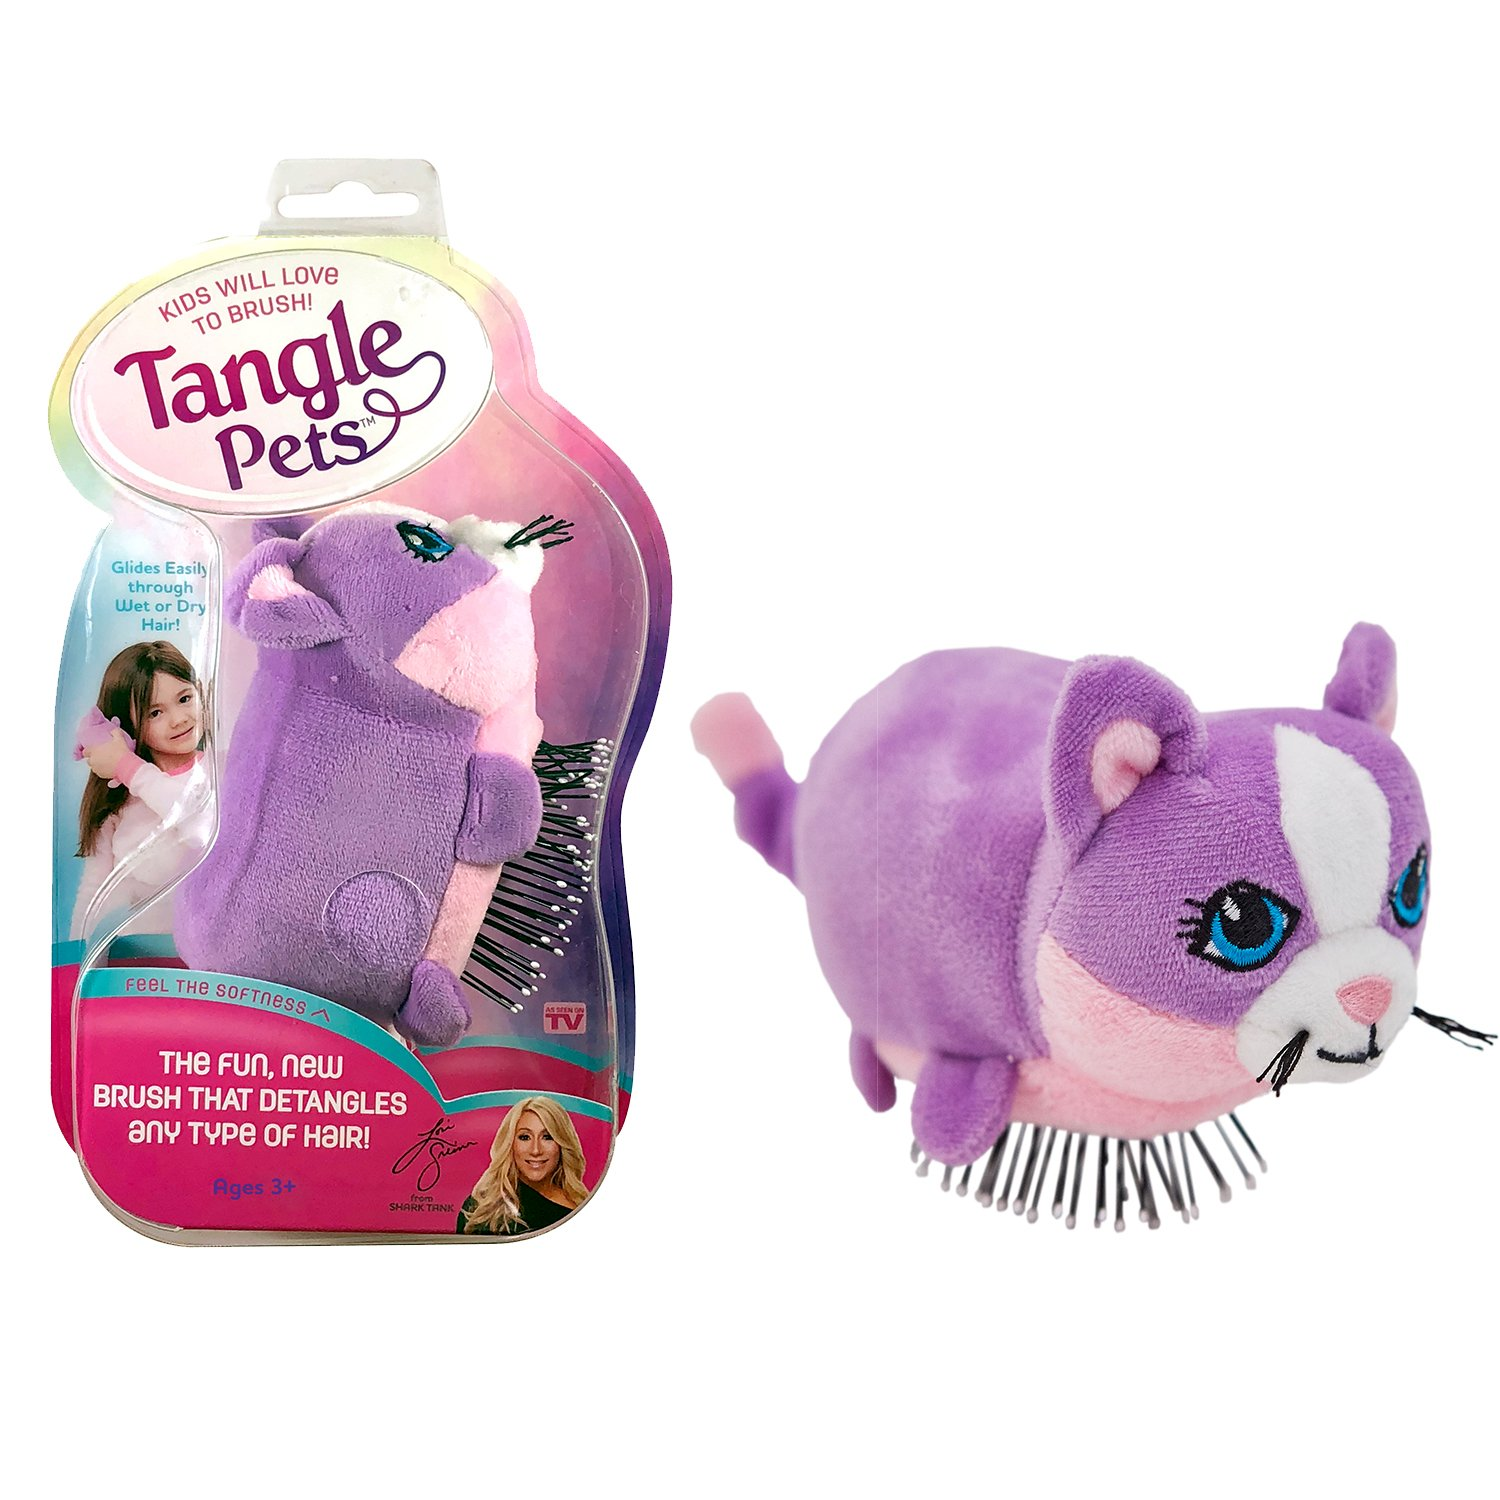 Amazon Com Tangle Pets Cupcake The Cat The Detangling Brush In A Plush Great For Any Hair Type Removable Plush As Seen On Shark Tank Beauty